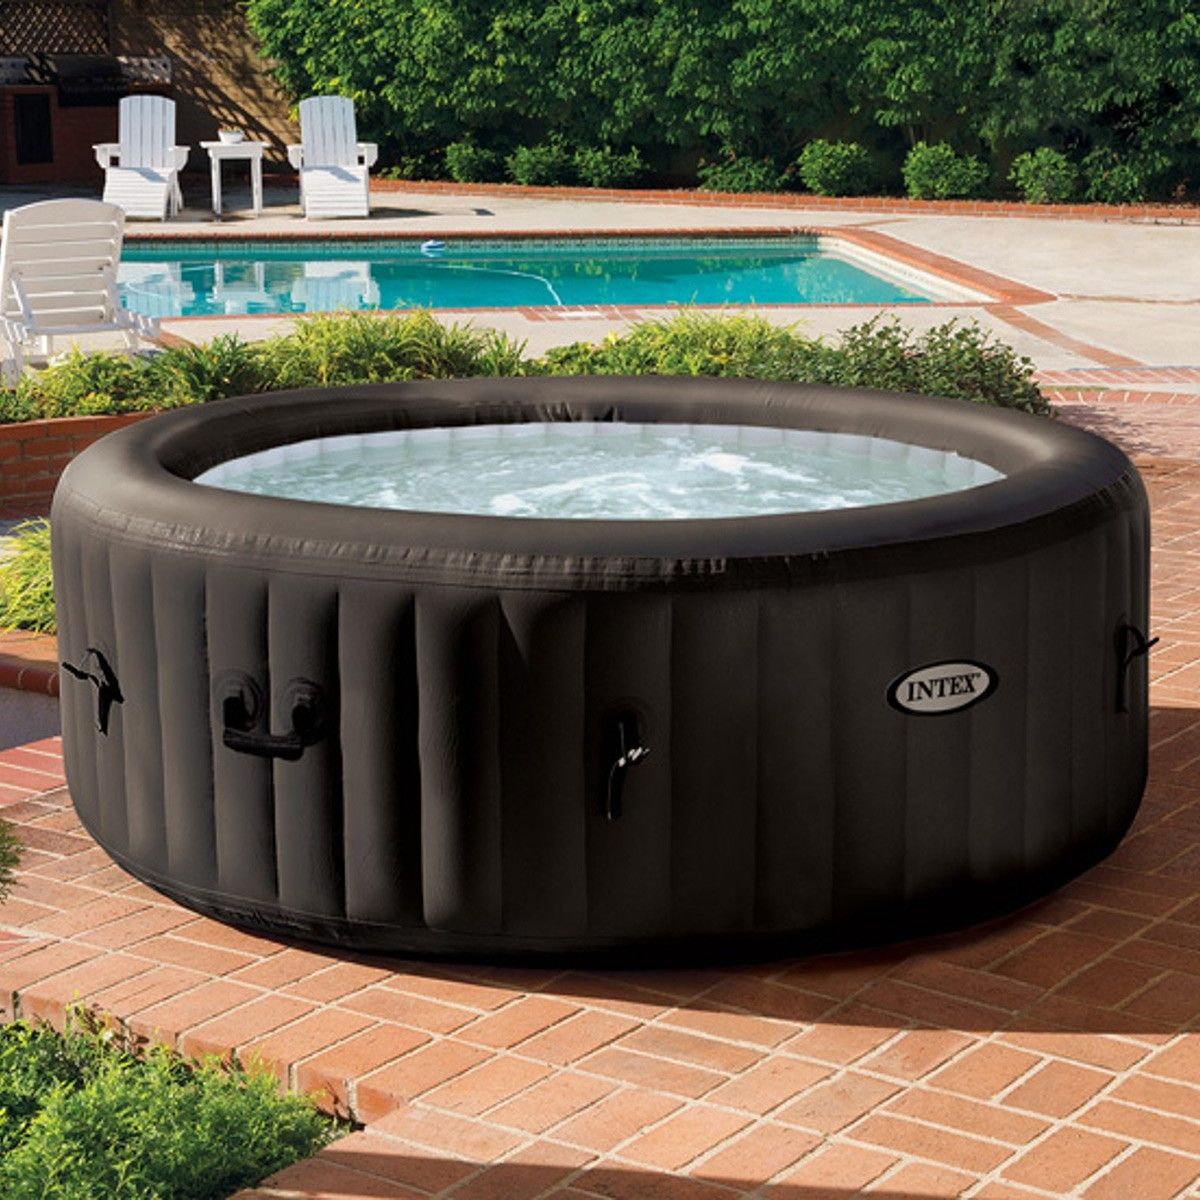 Pool Kaufen Lidl Intex Purespa Jet Massage Hot Tub 77 Spa Pinterest